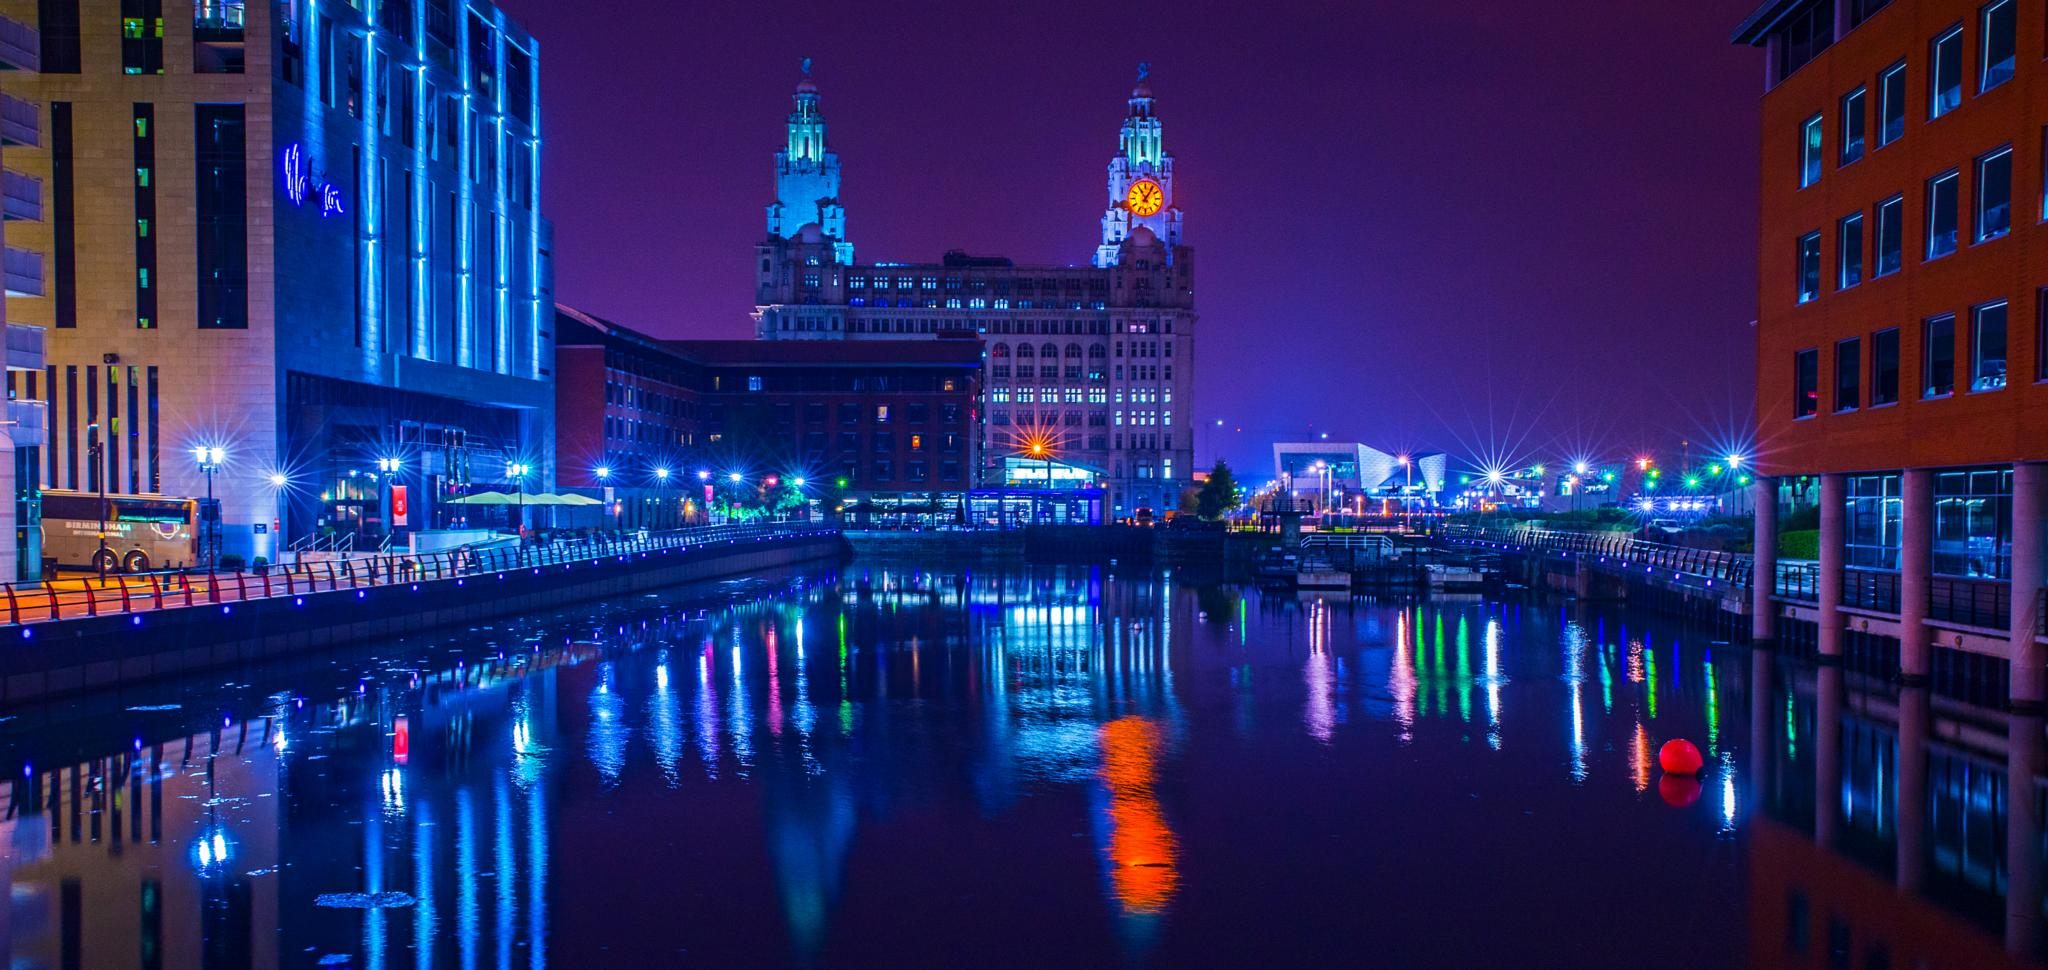 The Liver Building Liverpool by twopointeightphotography